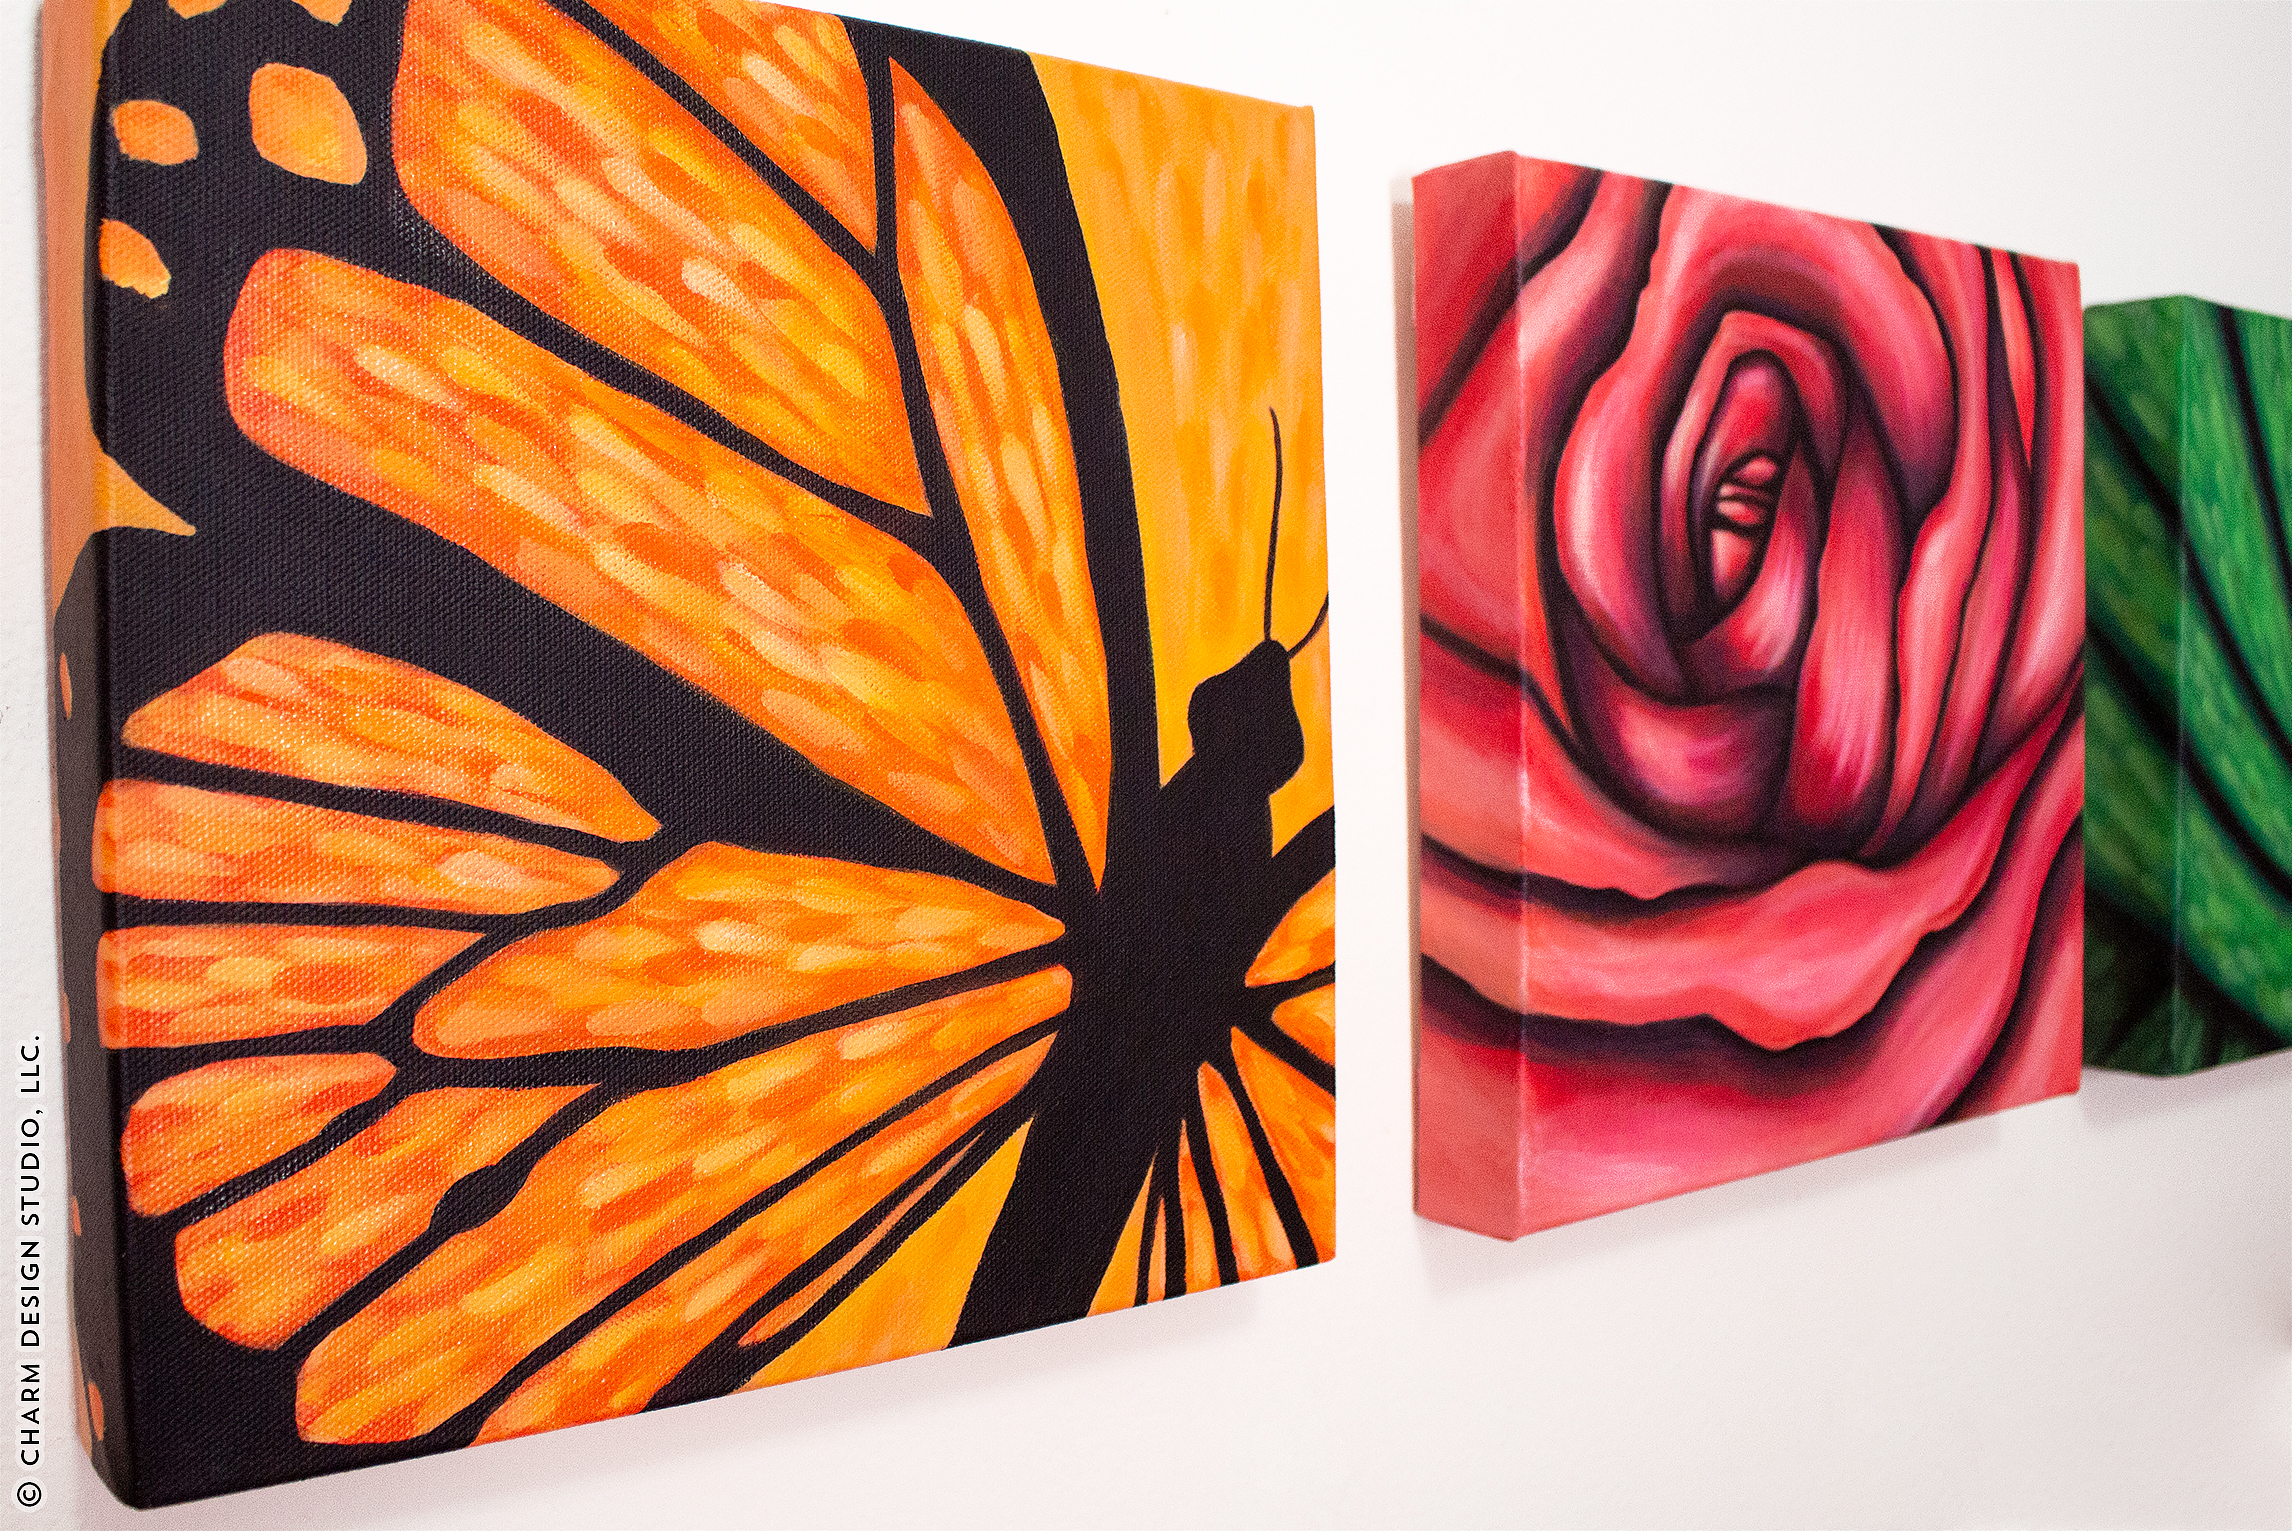 finished acrylic paintings on canvas hung up on wall | image © Charm Design Studio, LLC.